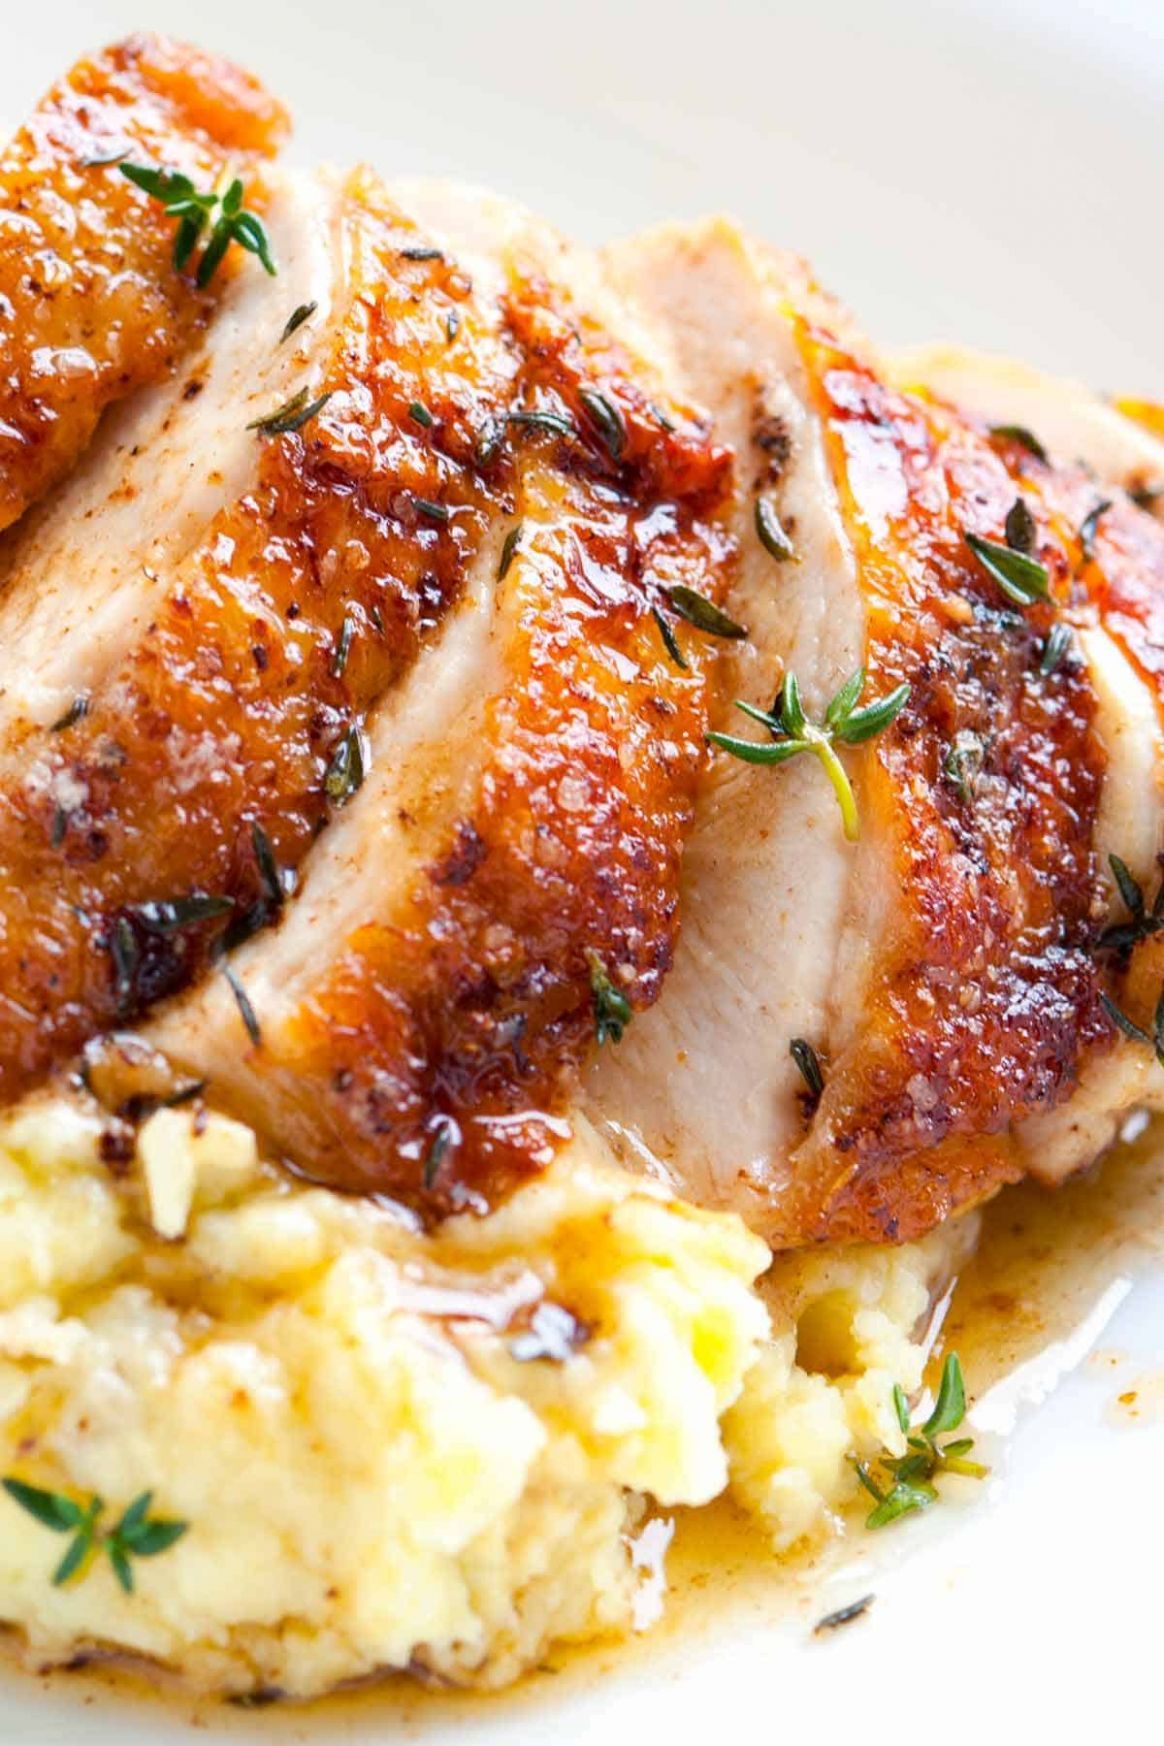 Easy Pan Roasted Chicken Breasts with Thyme - Recipes Chicken Breast With Bone